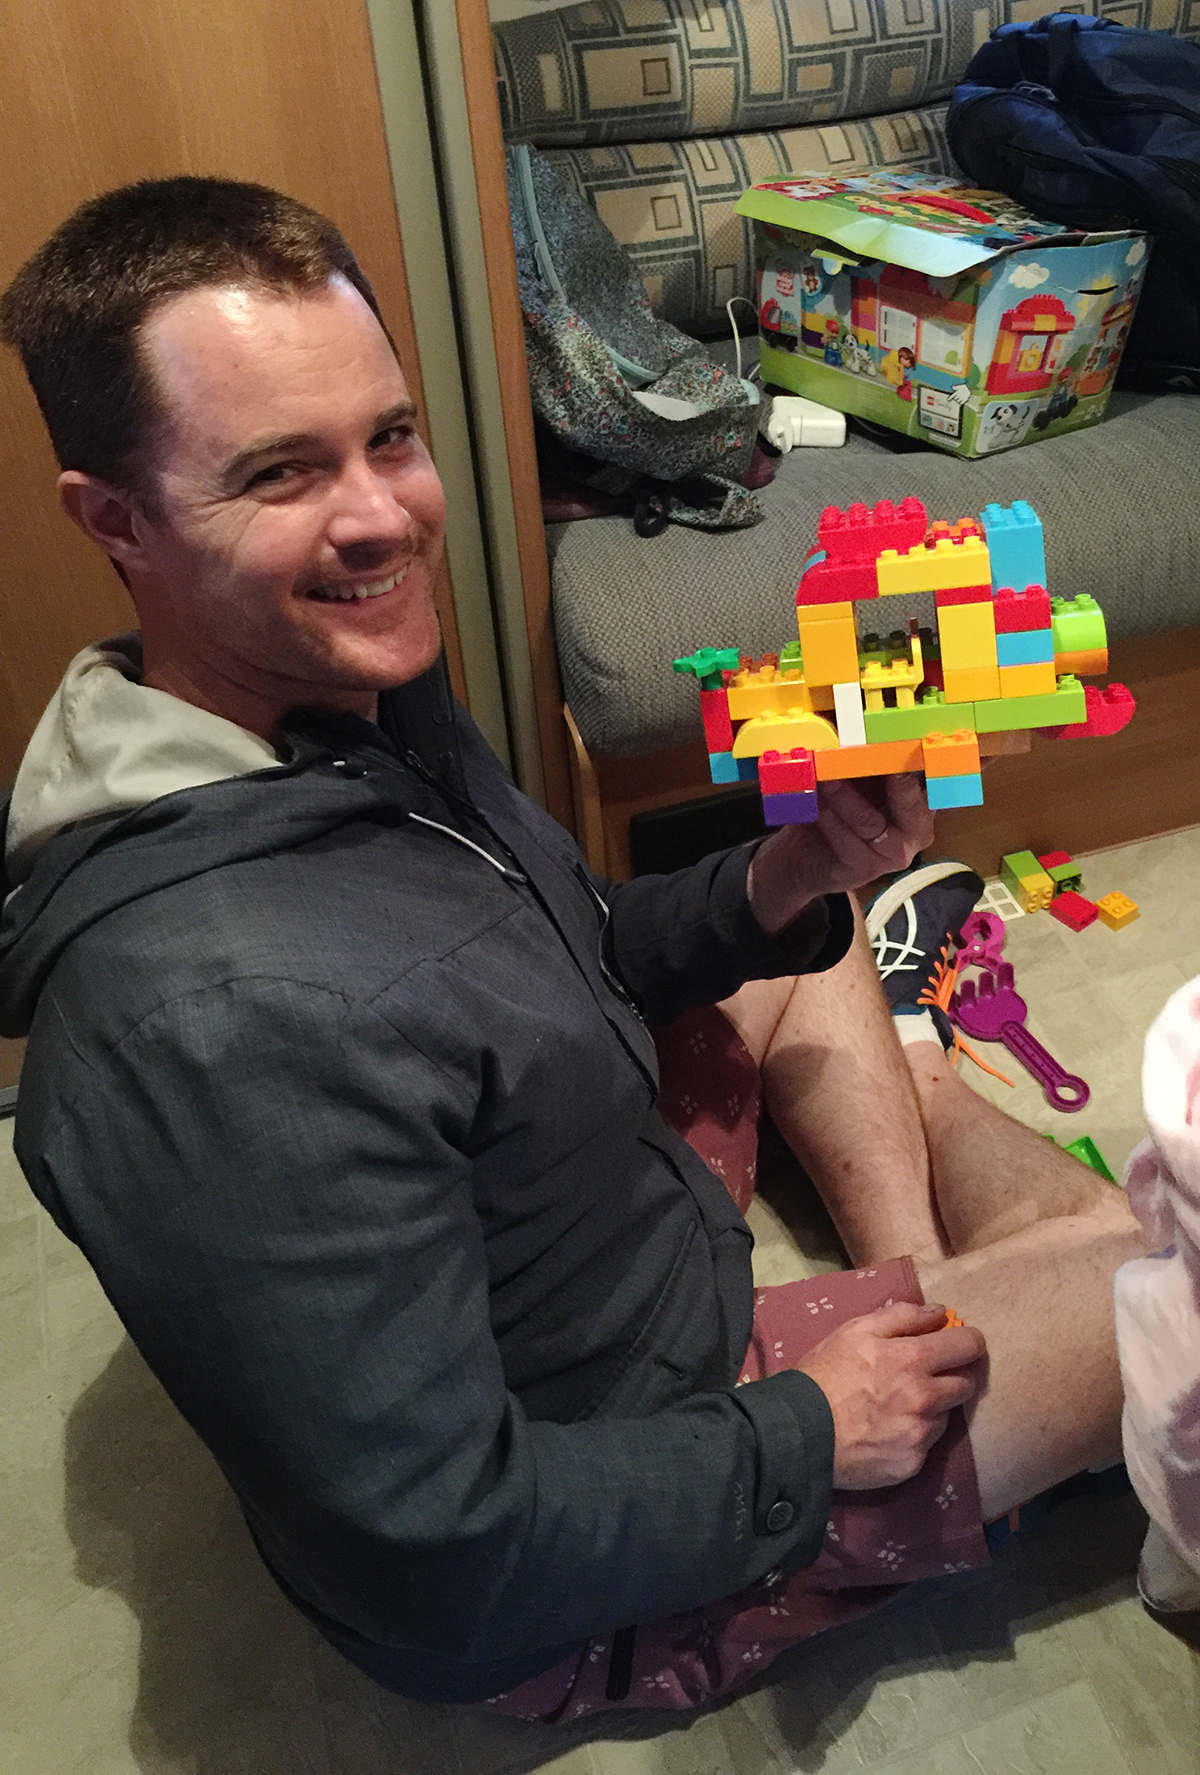 Double-Barrelled Travel caravanning around WA duplo